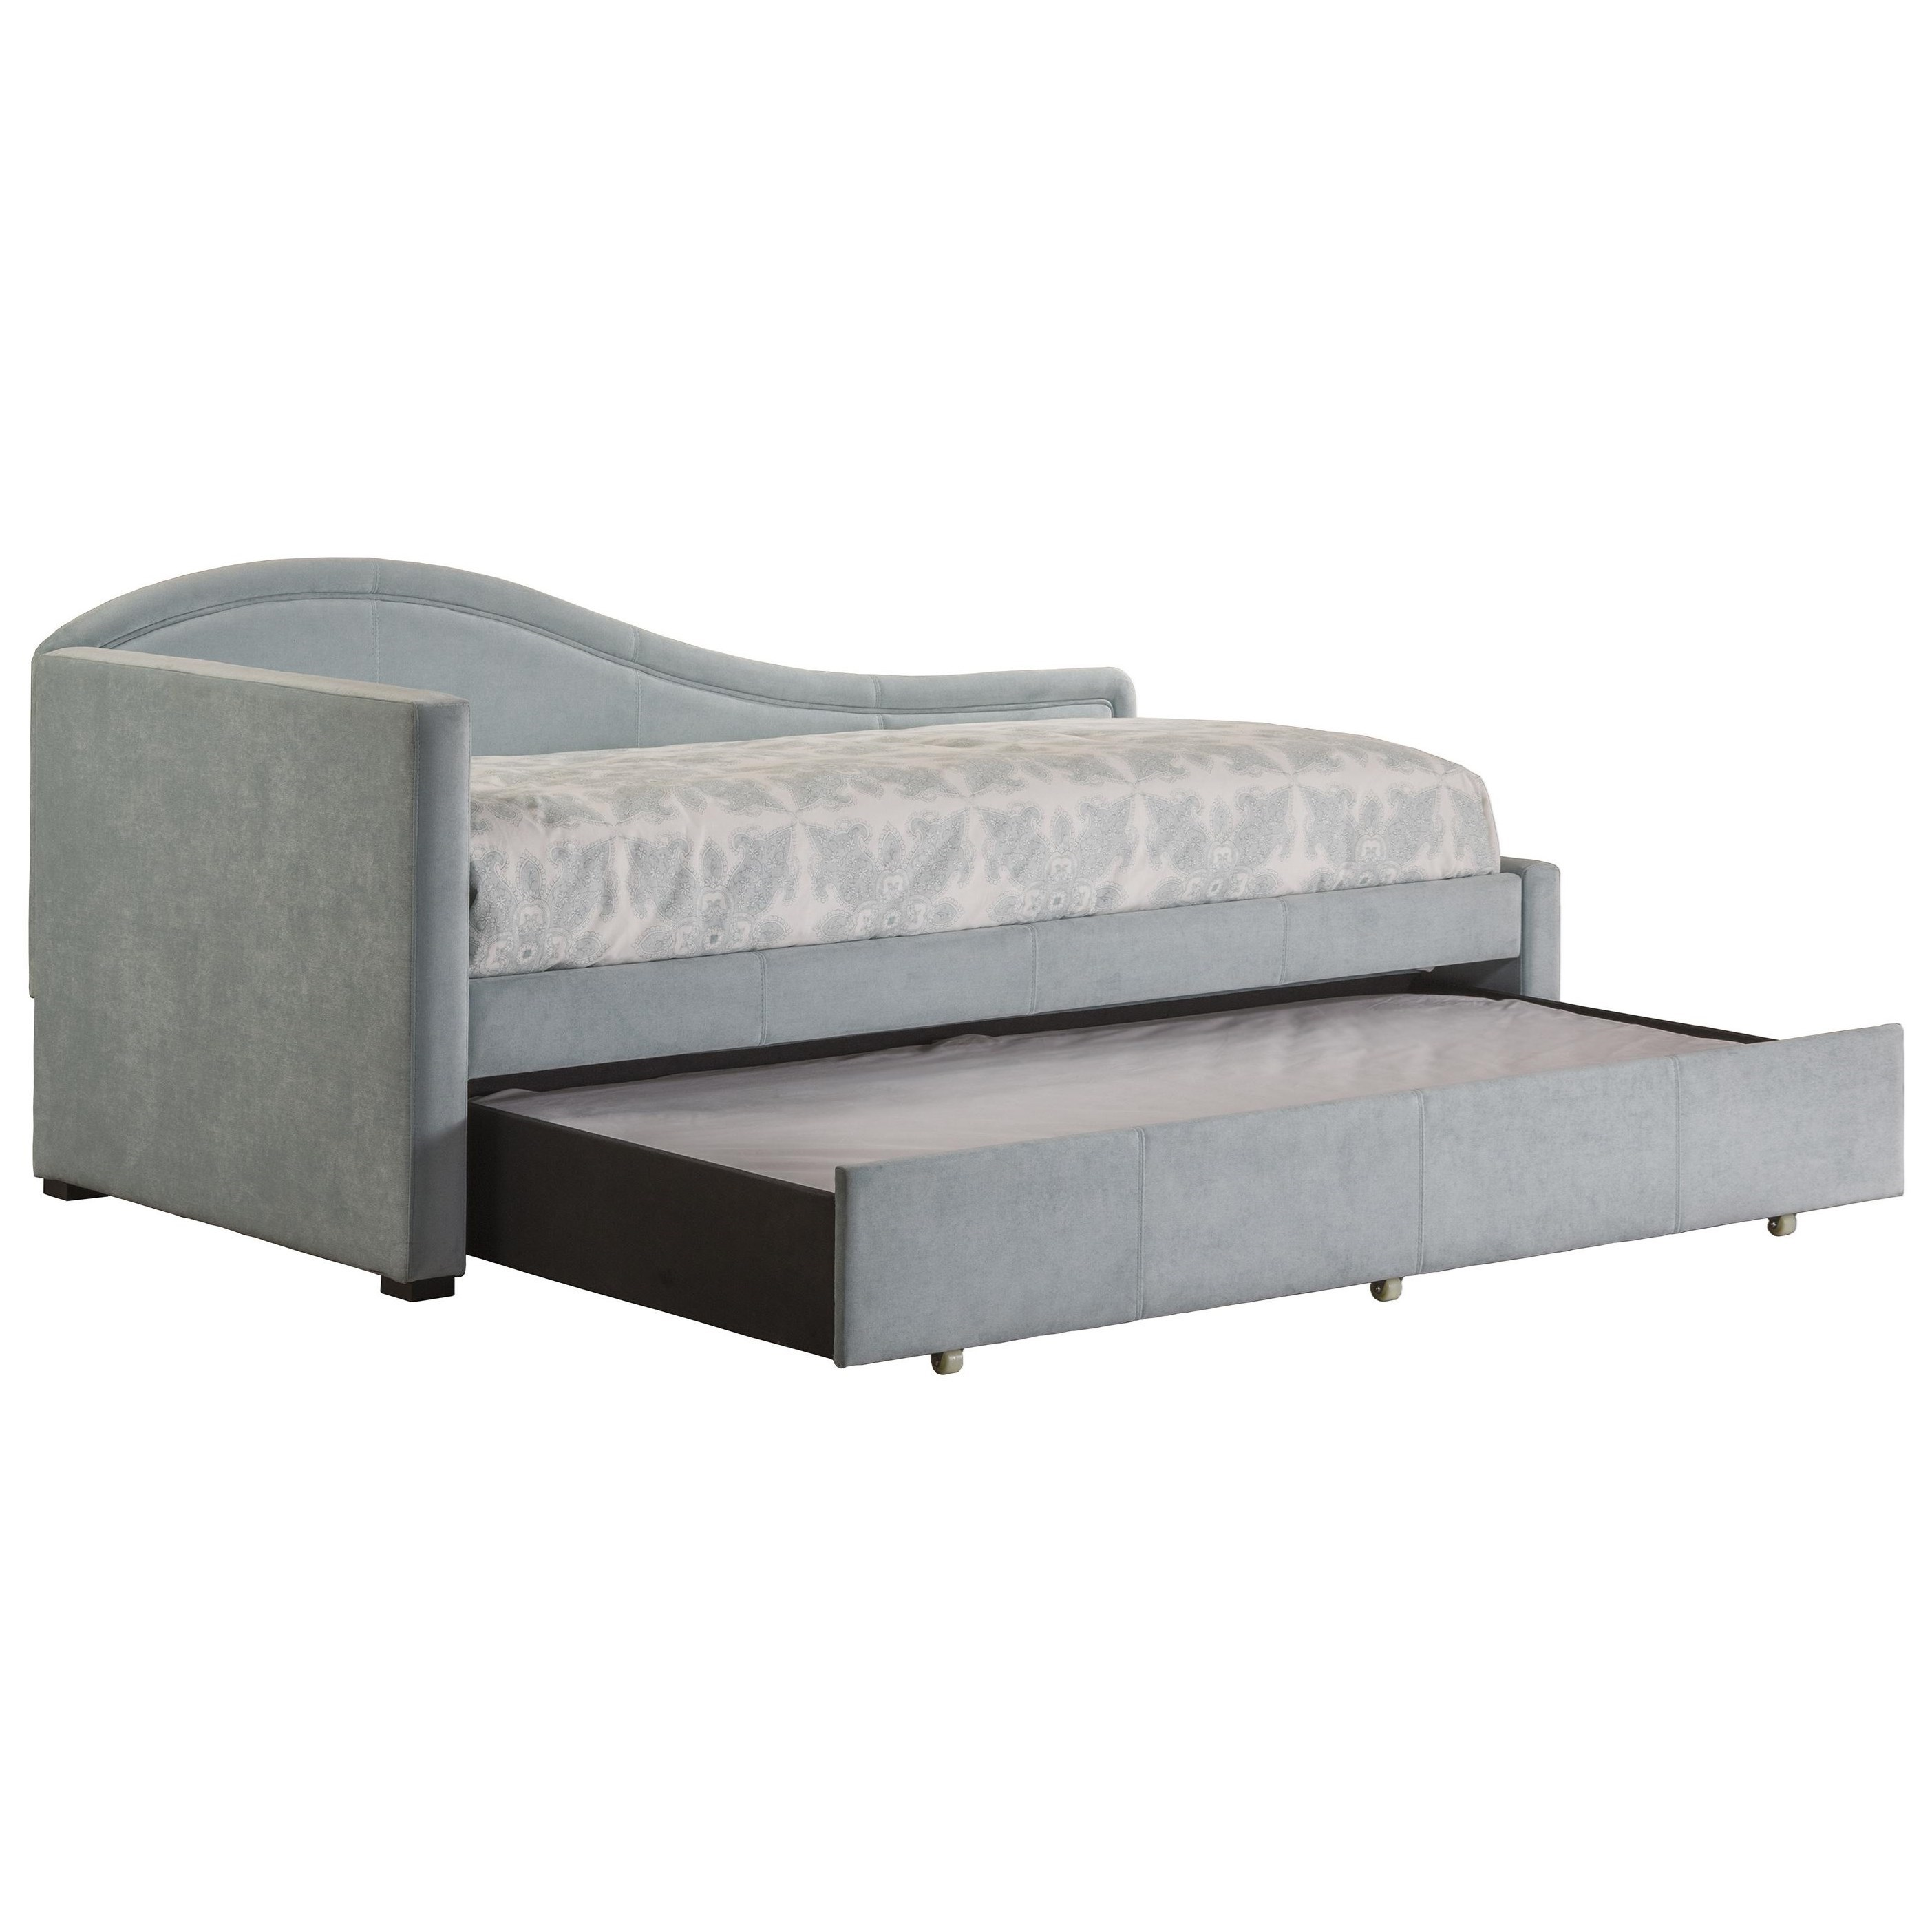 Hillsdale Daybeds Daybed with Trundle - Item Number: 1852DBT